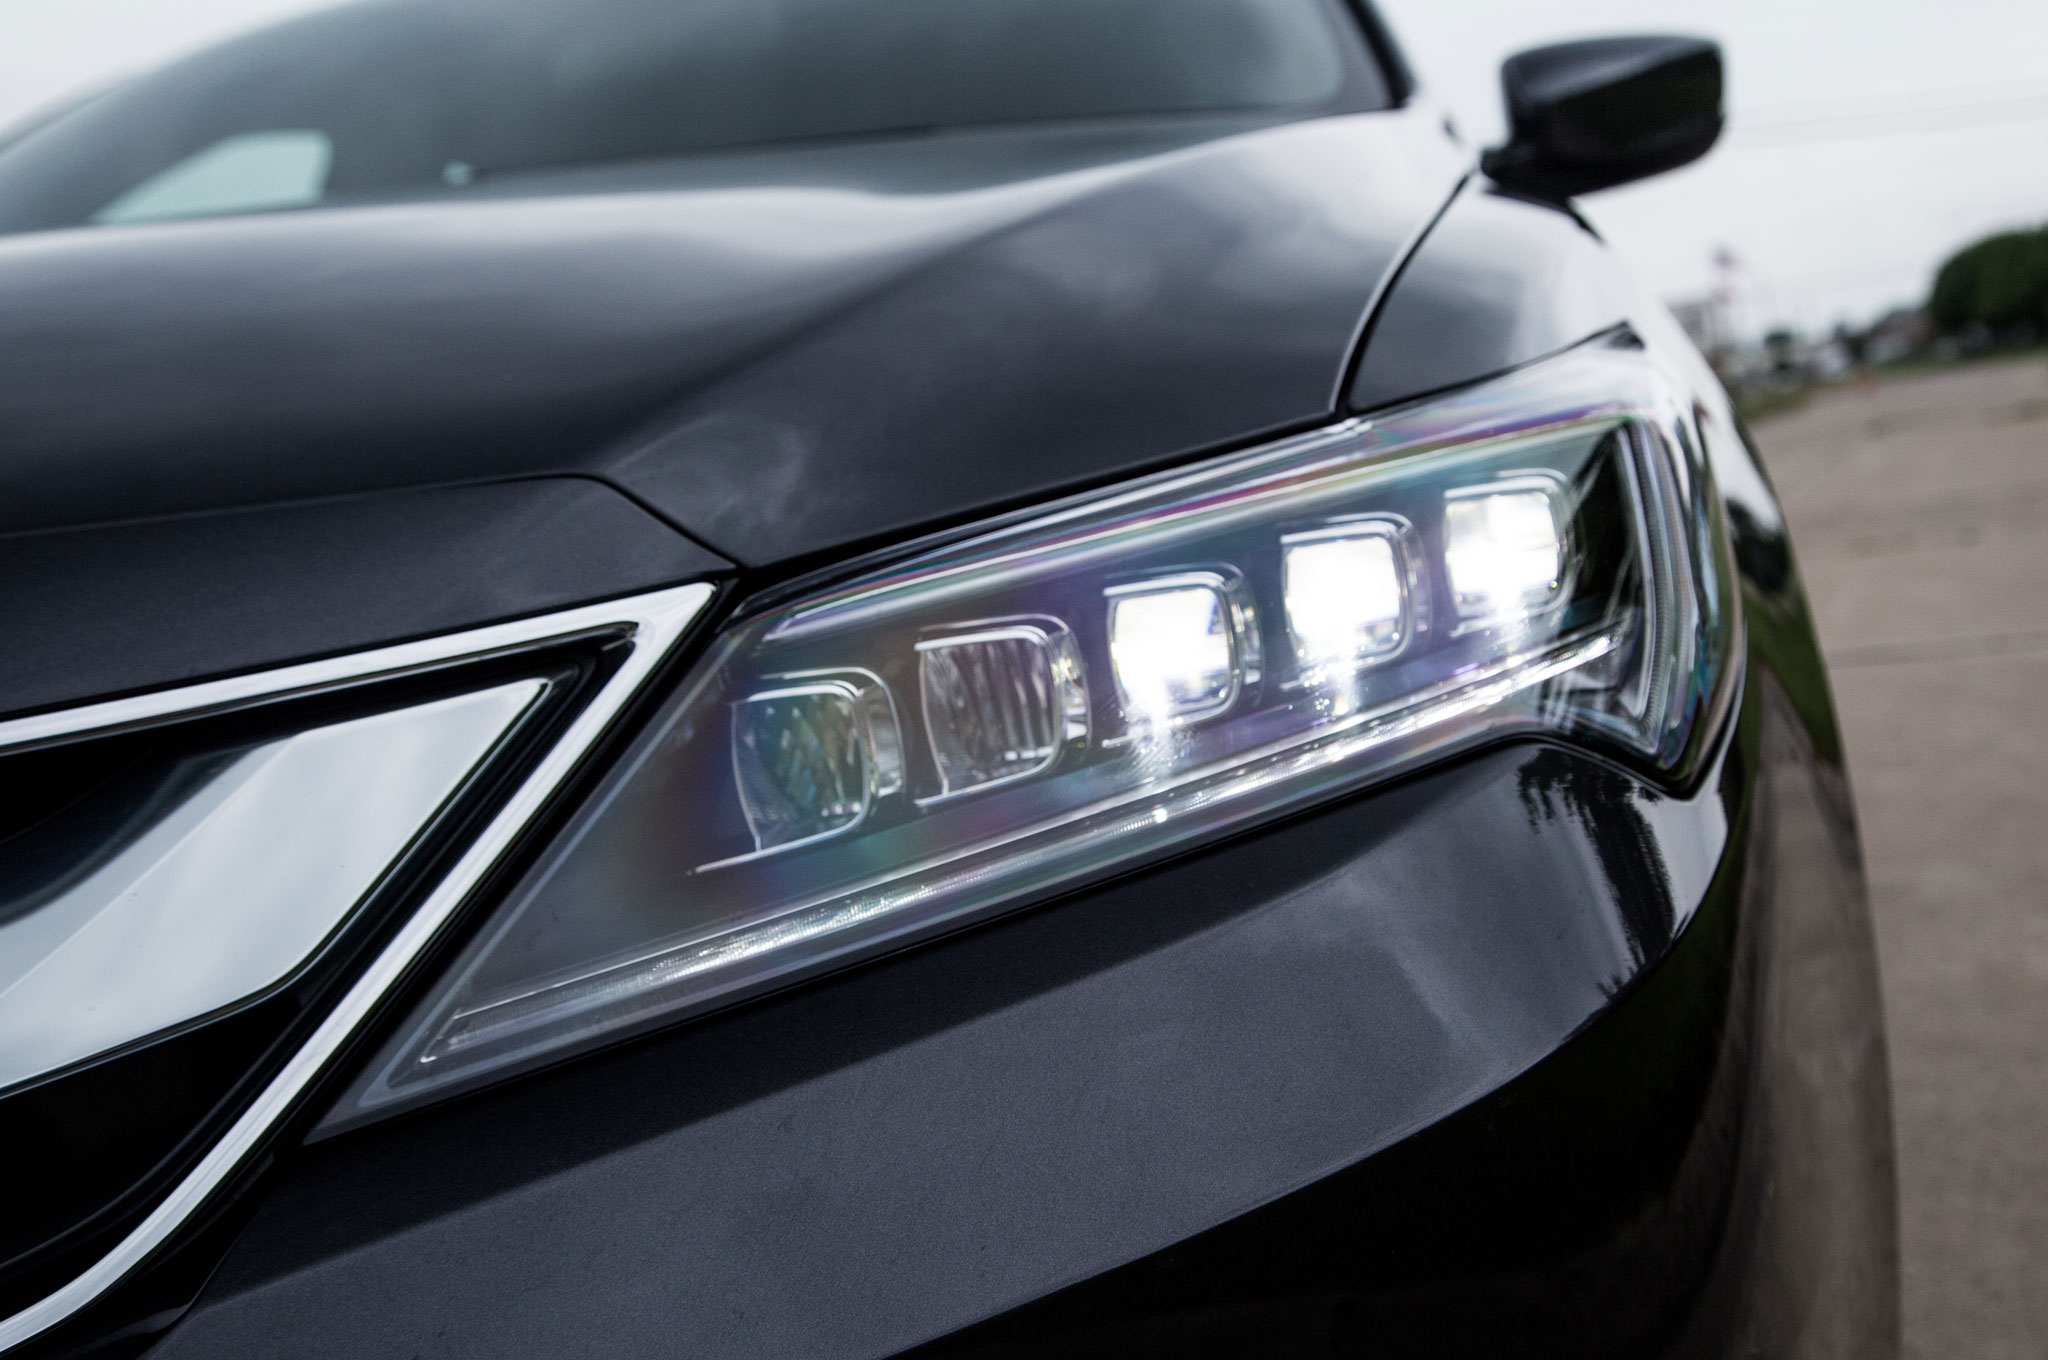 spec of s acura sam a premium thoughts ilx